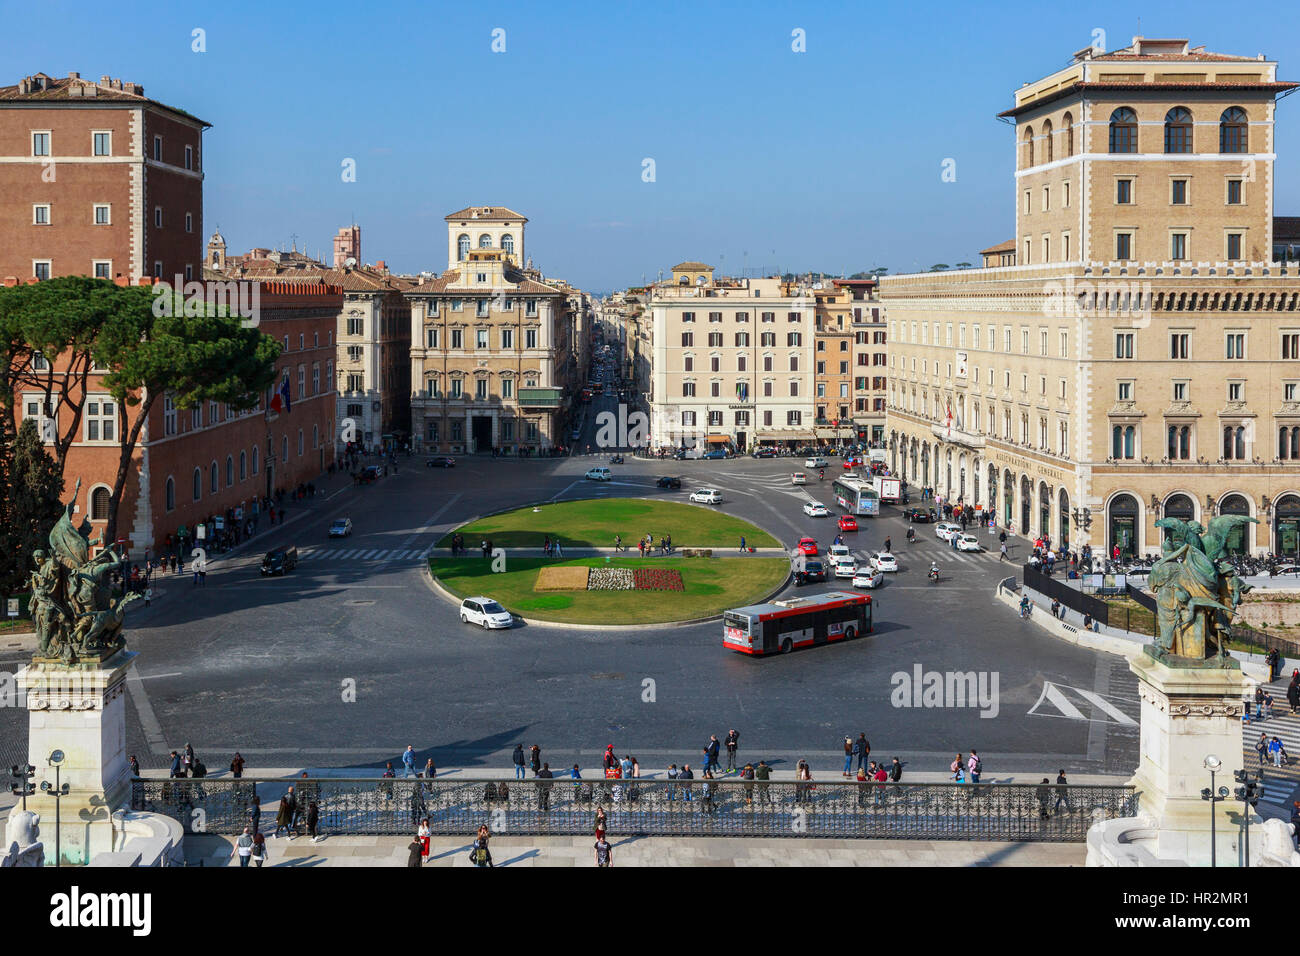 View of Piazza Venezia, towards Via del Corso, from the Monument to Vittorio Emanuele, Rome, Italy - Stock Image